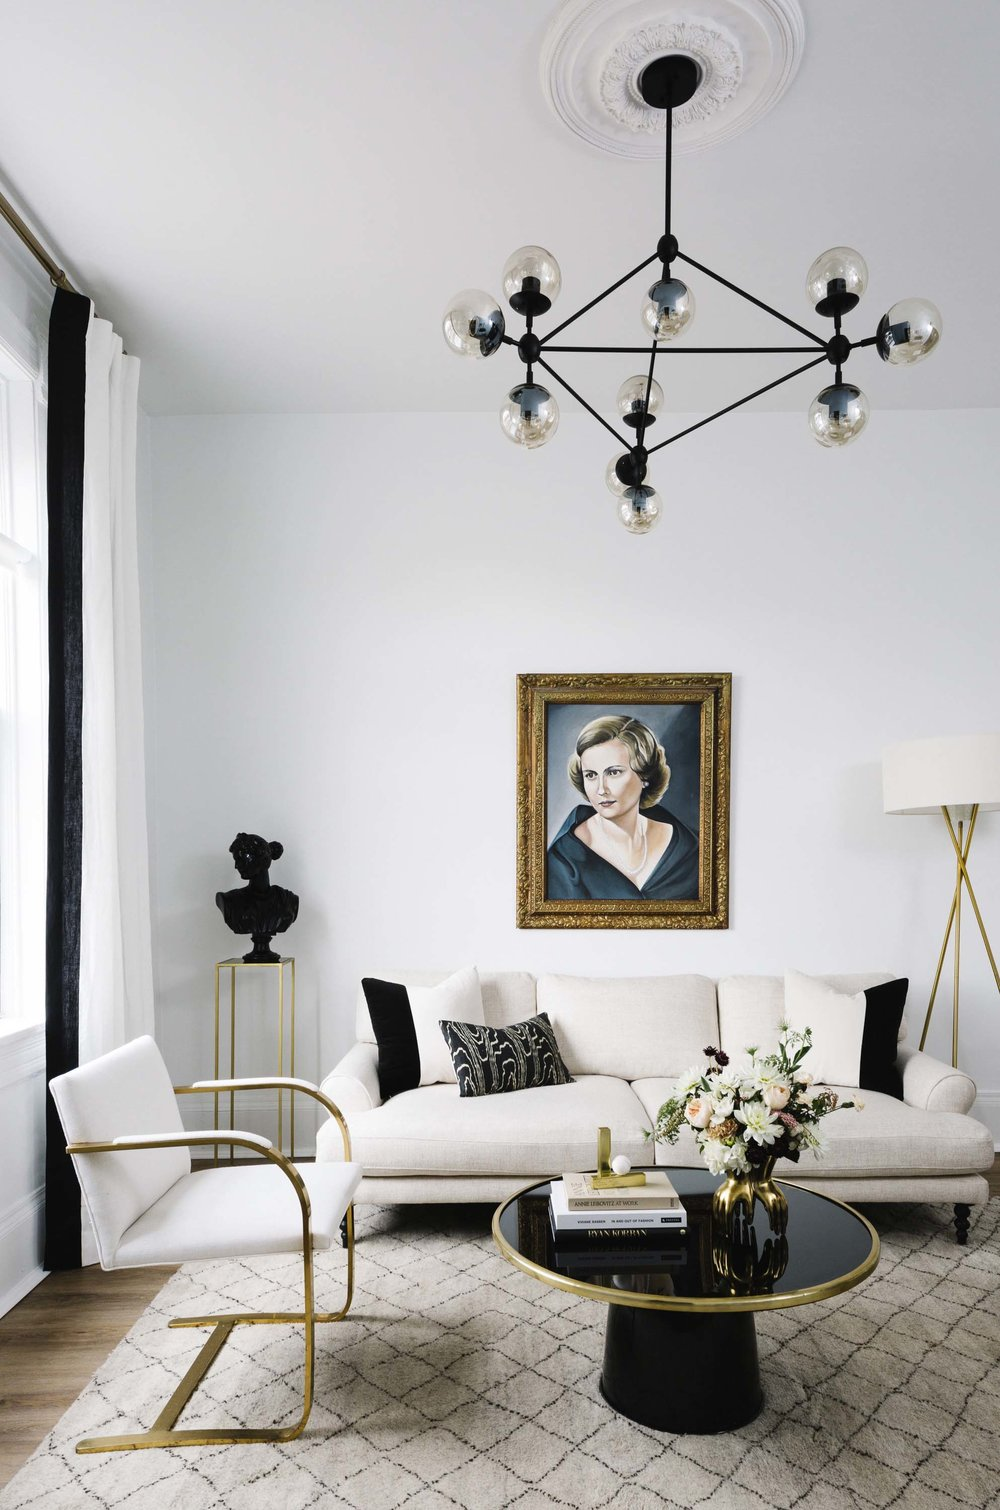 A Denver Designer's Sophisticated, Modern Apartment